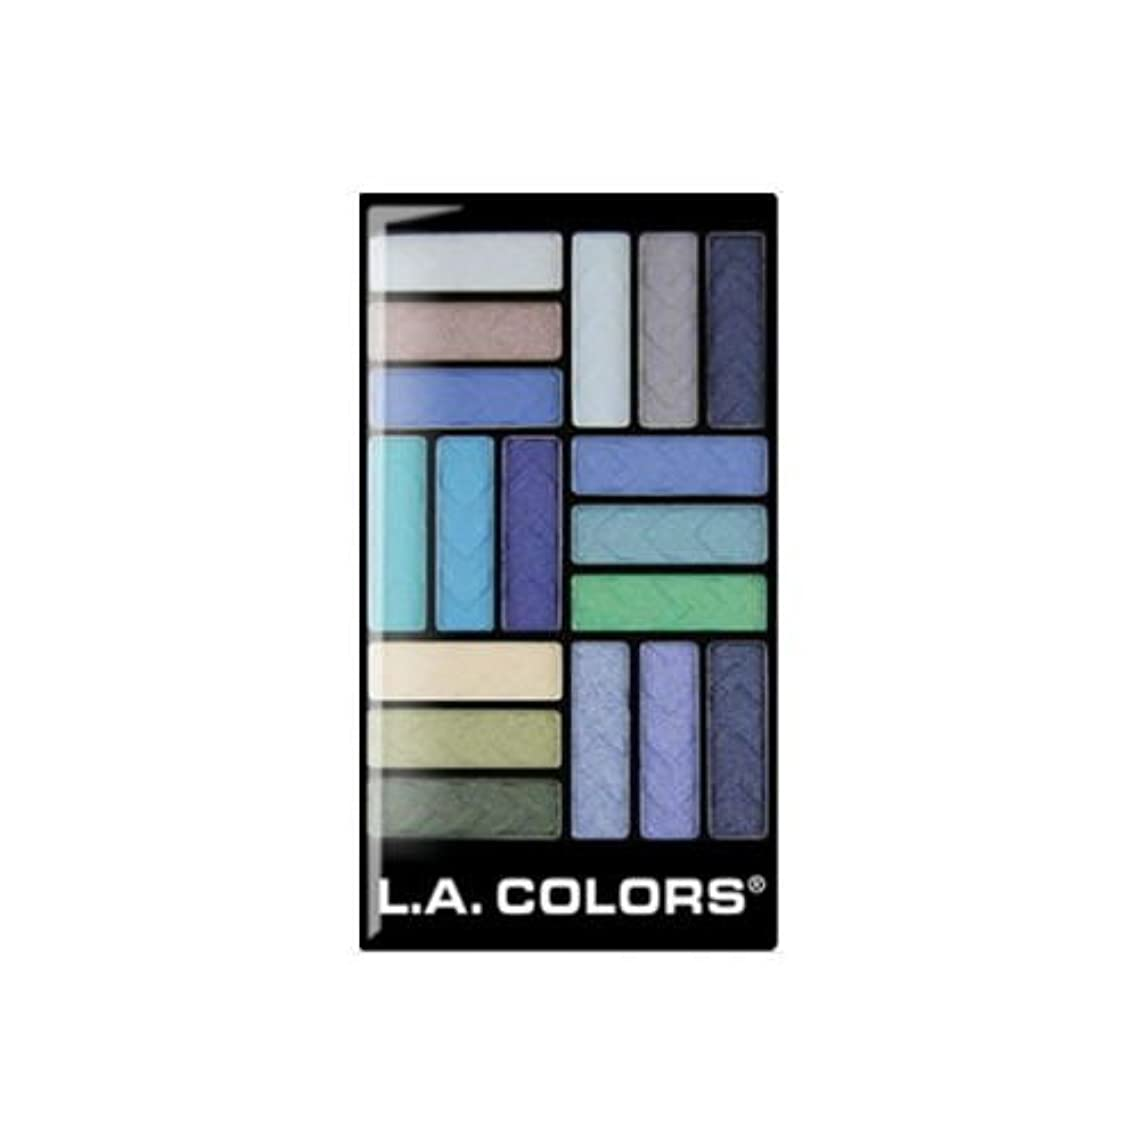 (6 Pack) L.A. COLORS 18 Color Eyeshadow - Shady Lady (並行輸入品)